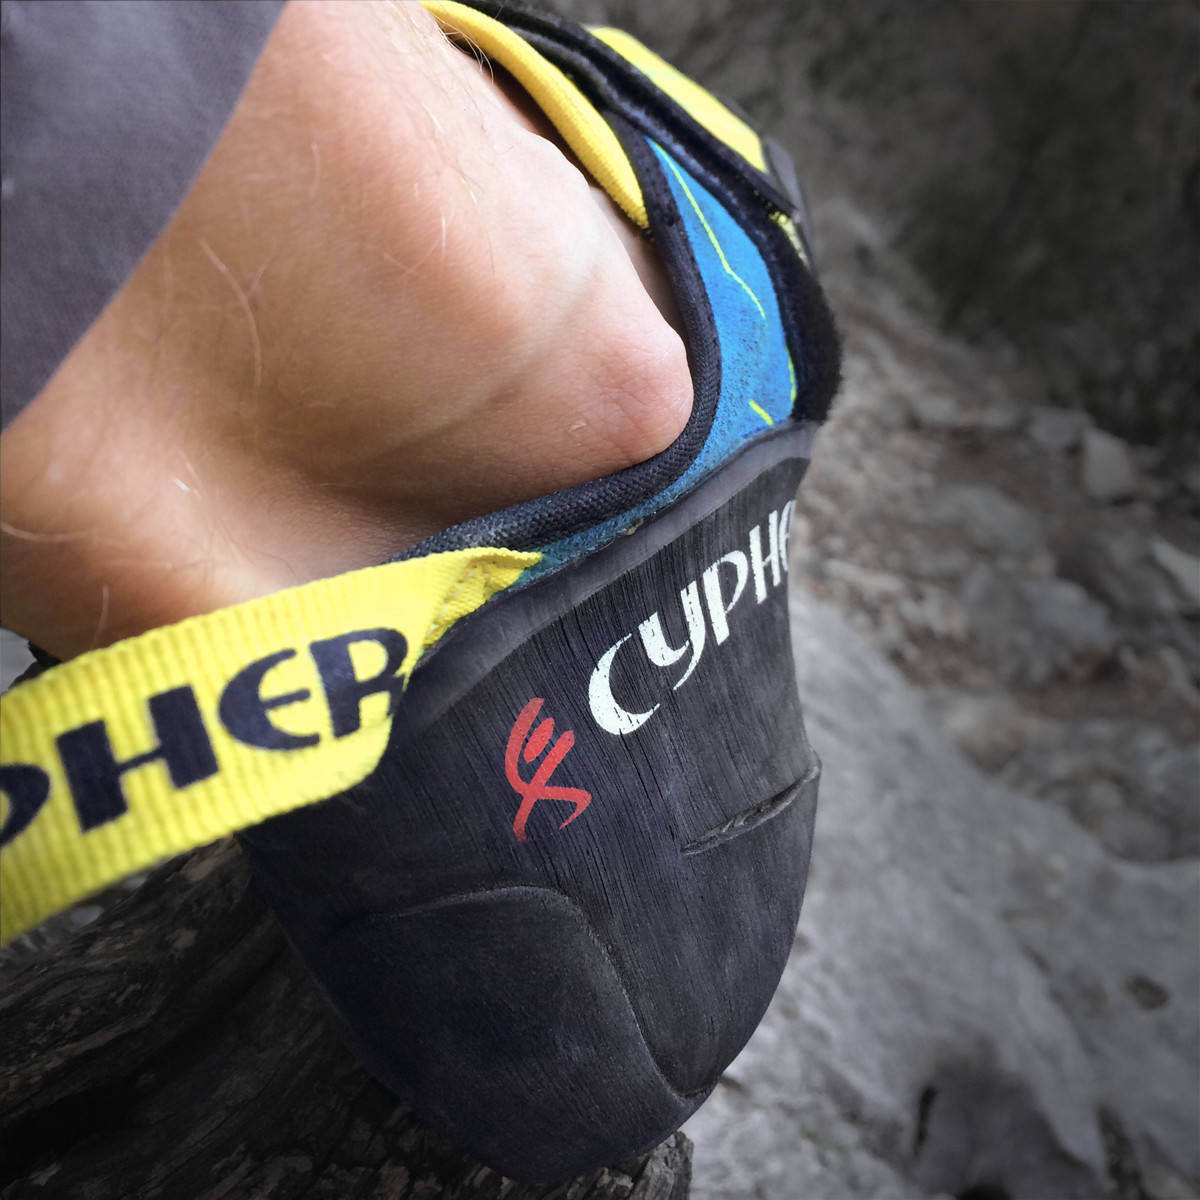 Upper digging into my scrawny ankles - a problem I have with most climbing shoes